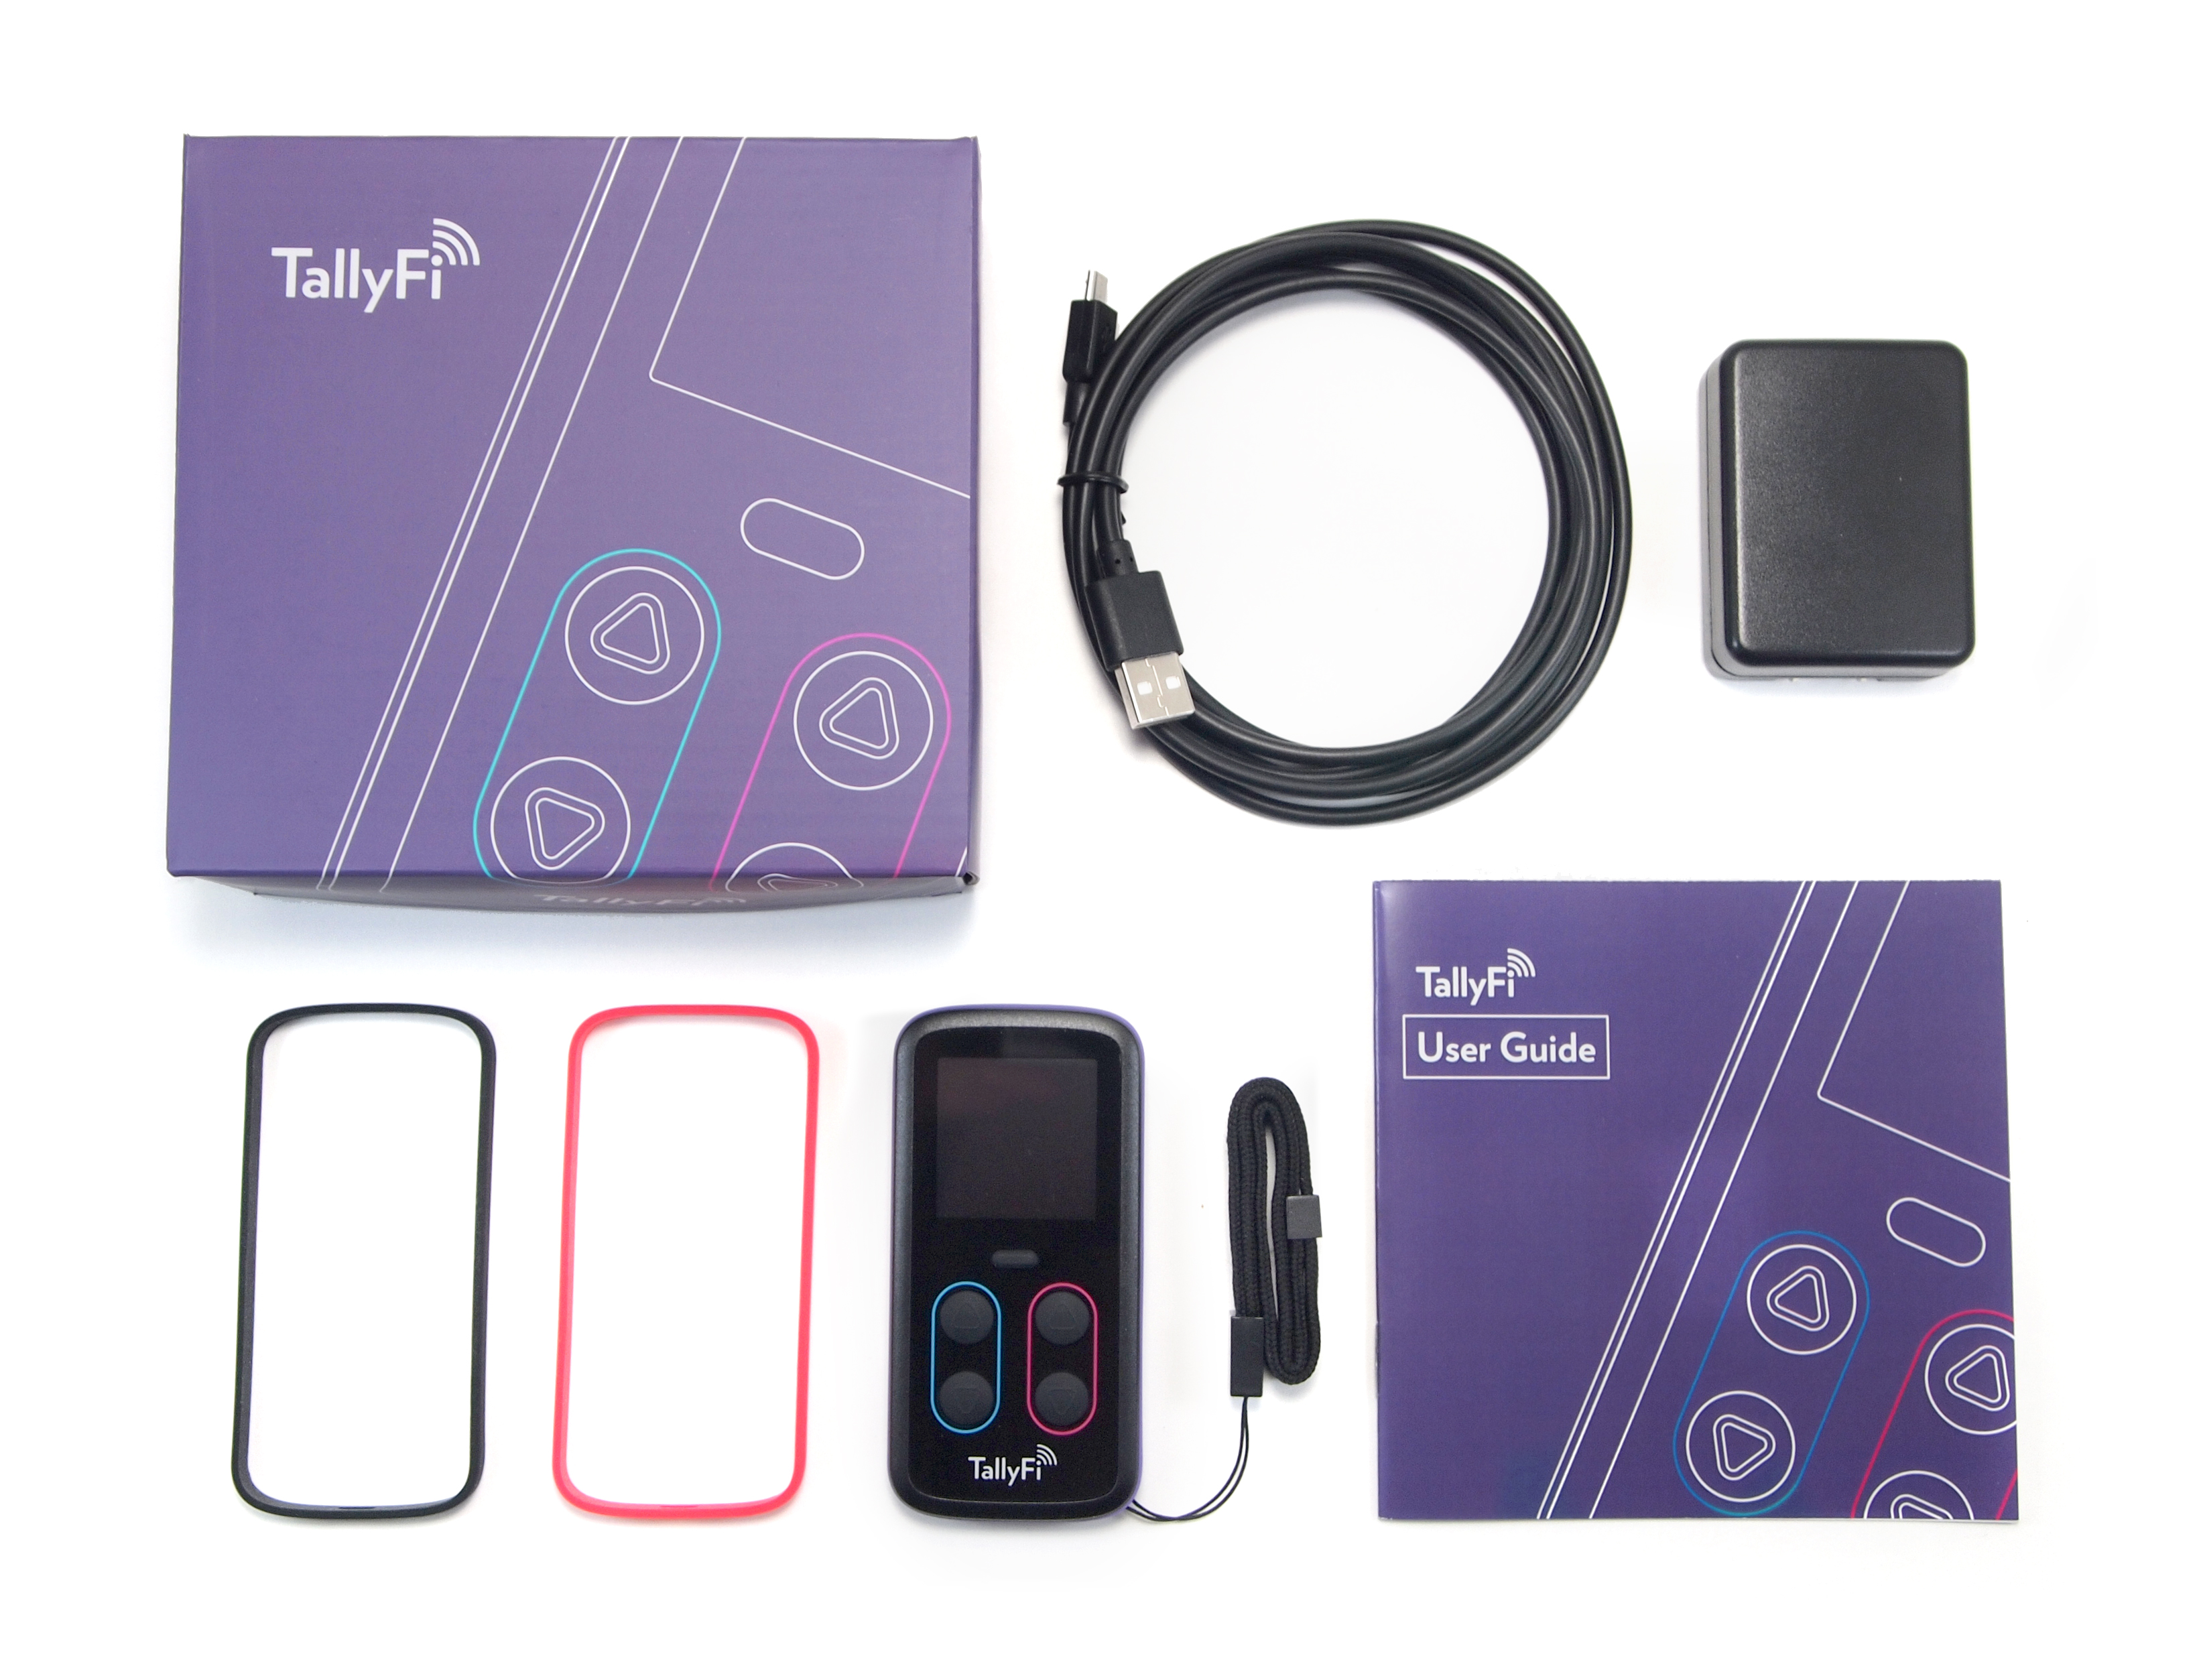 tallyfi-package-contents.jpg